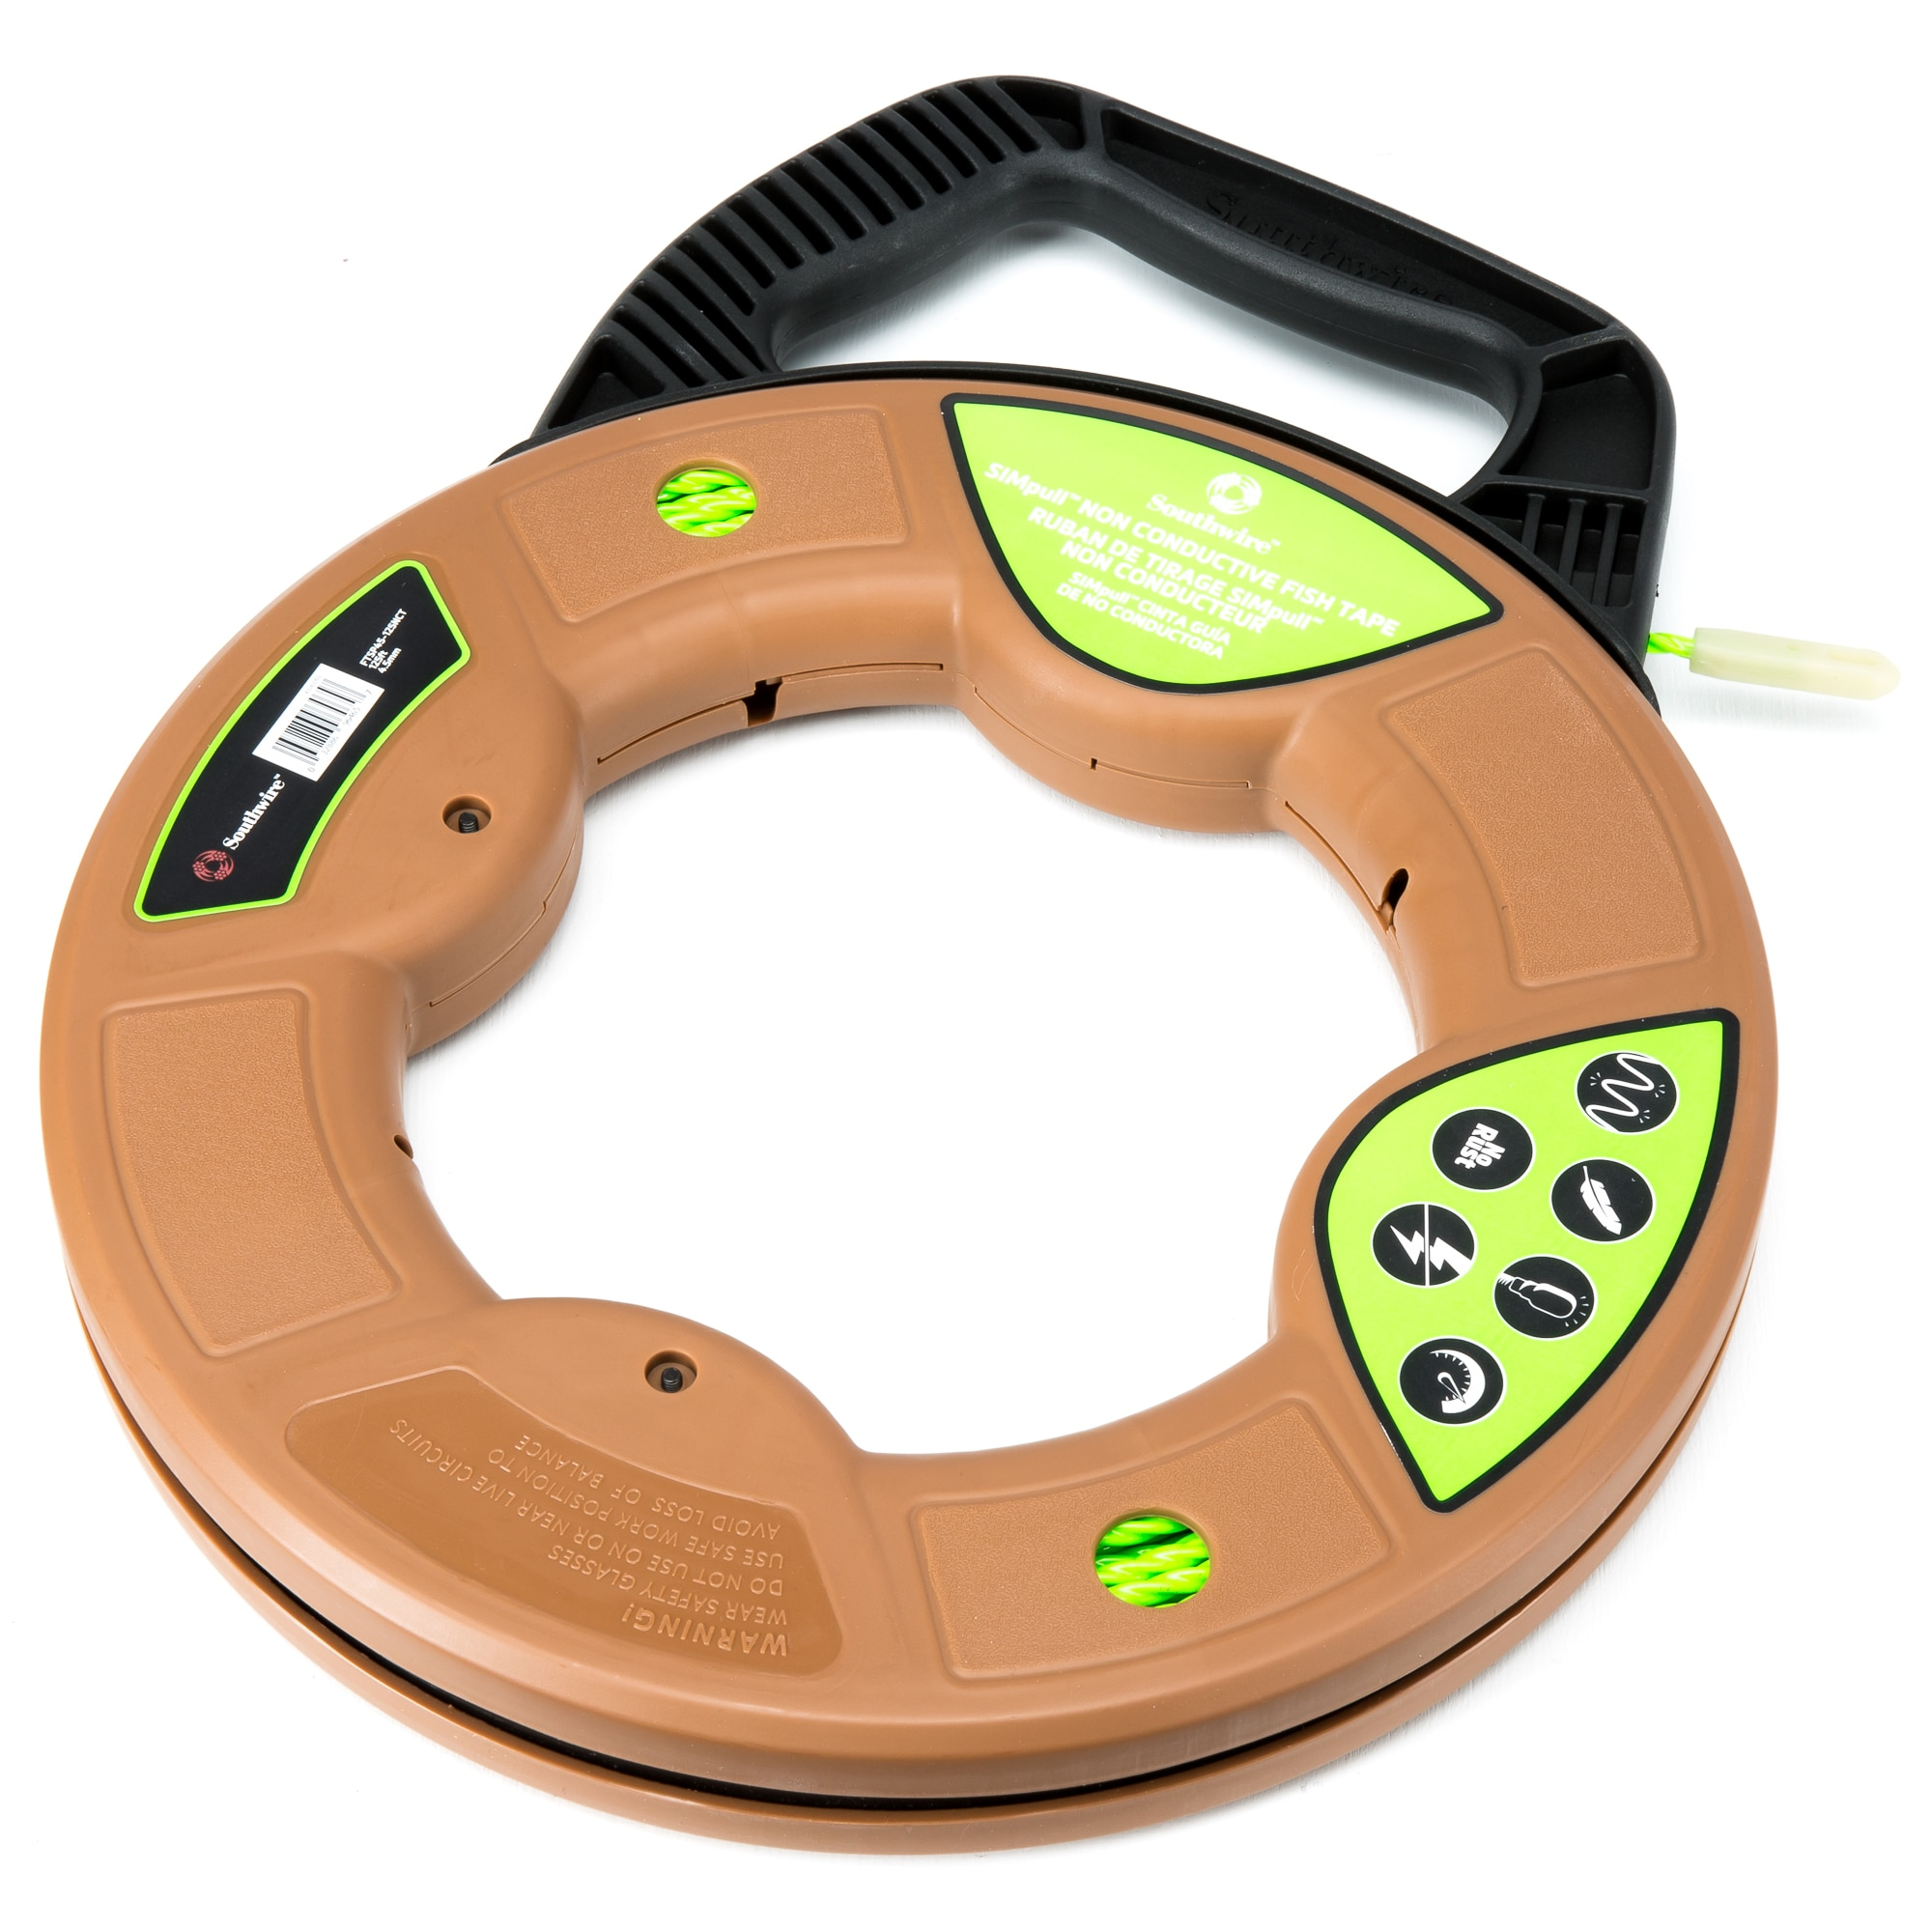 Southwire Ftsp45-125nct SIMPULL Non Conductive Fish Tape 125ft for sale online